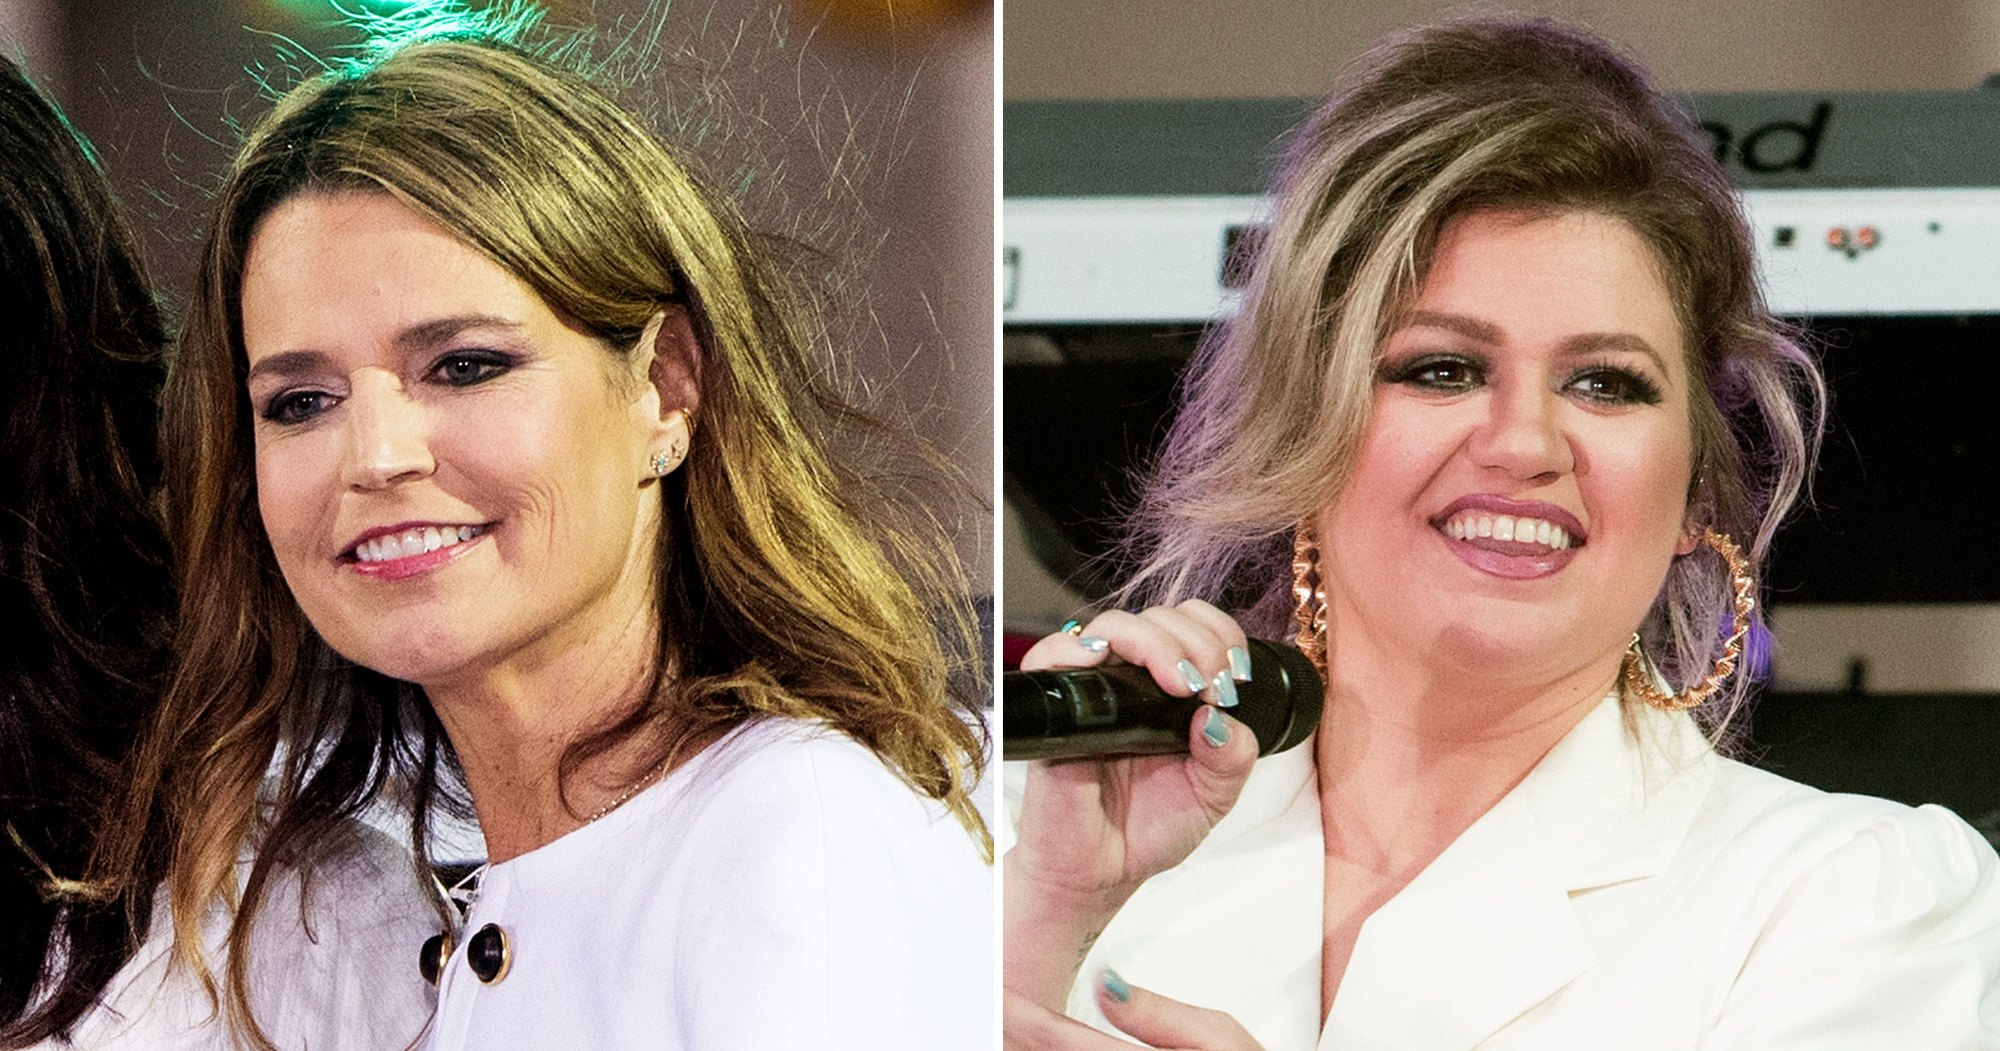 Savannah Guthrie and Kelly Clarkson's Daughters Are Now BFFs, 'Cannot Be Separated'